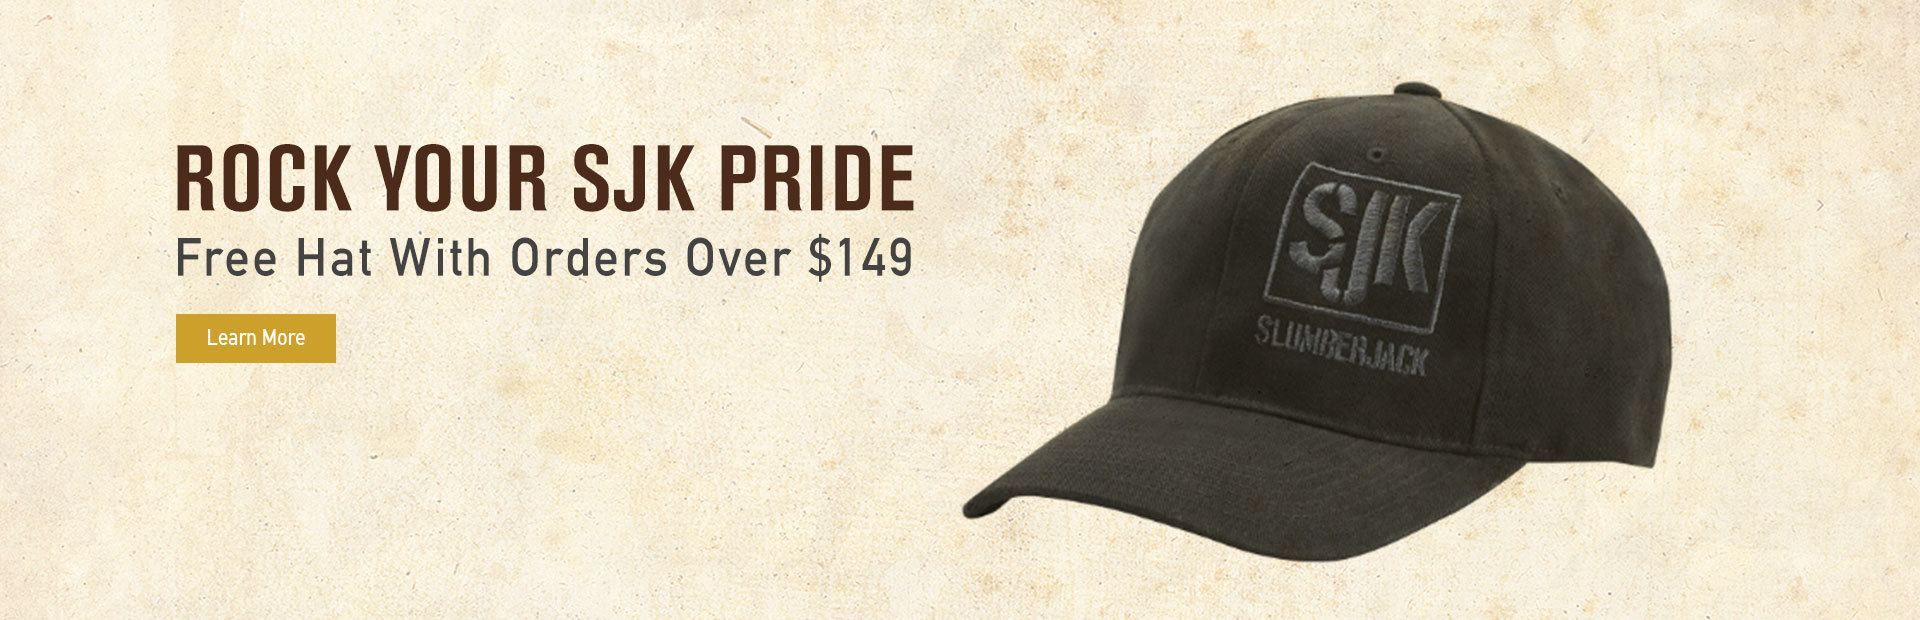 Free SJK Hat With Orders Over $149